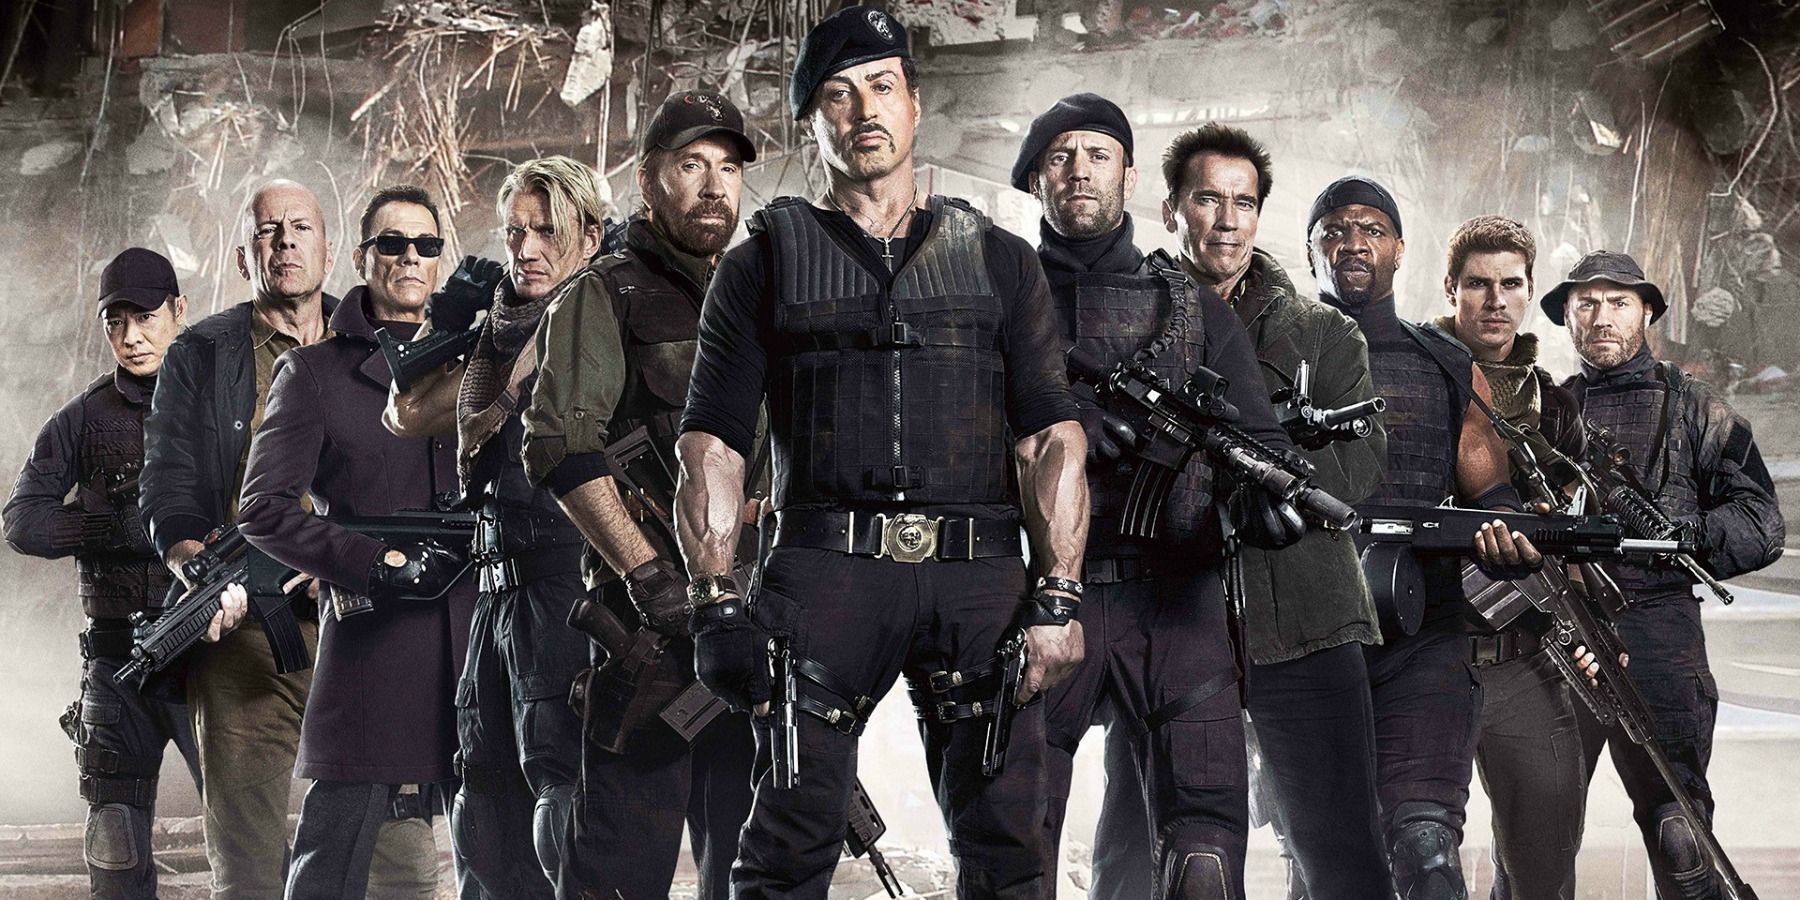 Sylvester Stallone In Expendables 2 Wallpapers: Sylvester Stallone Confirms Expendables 4